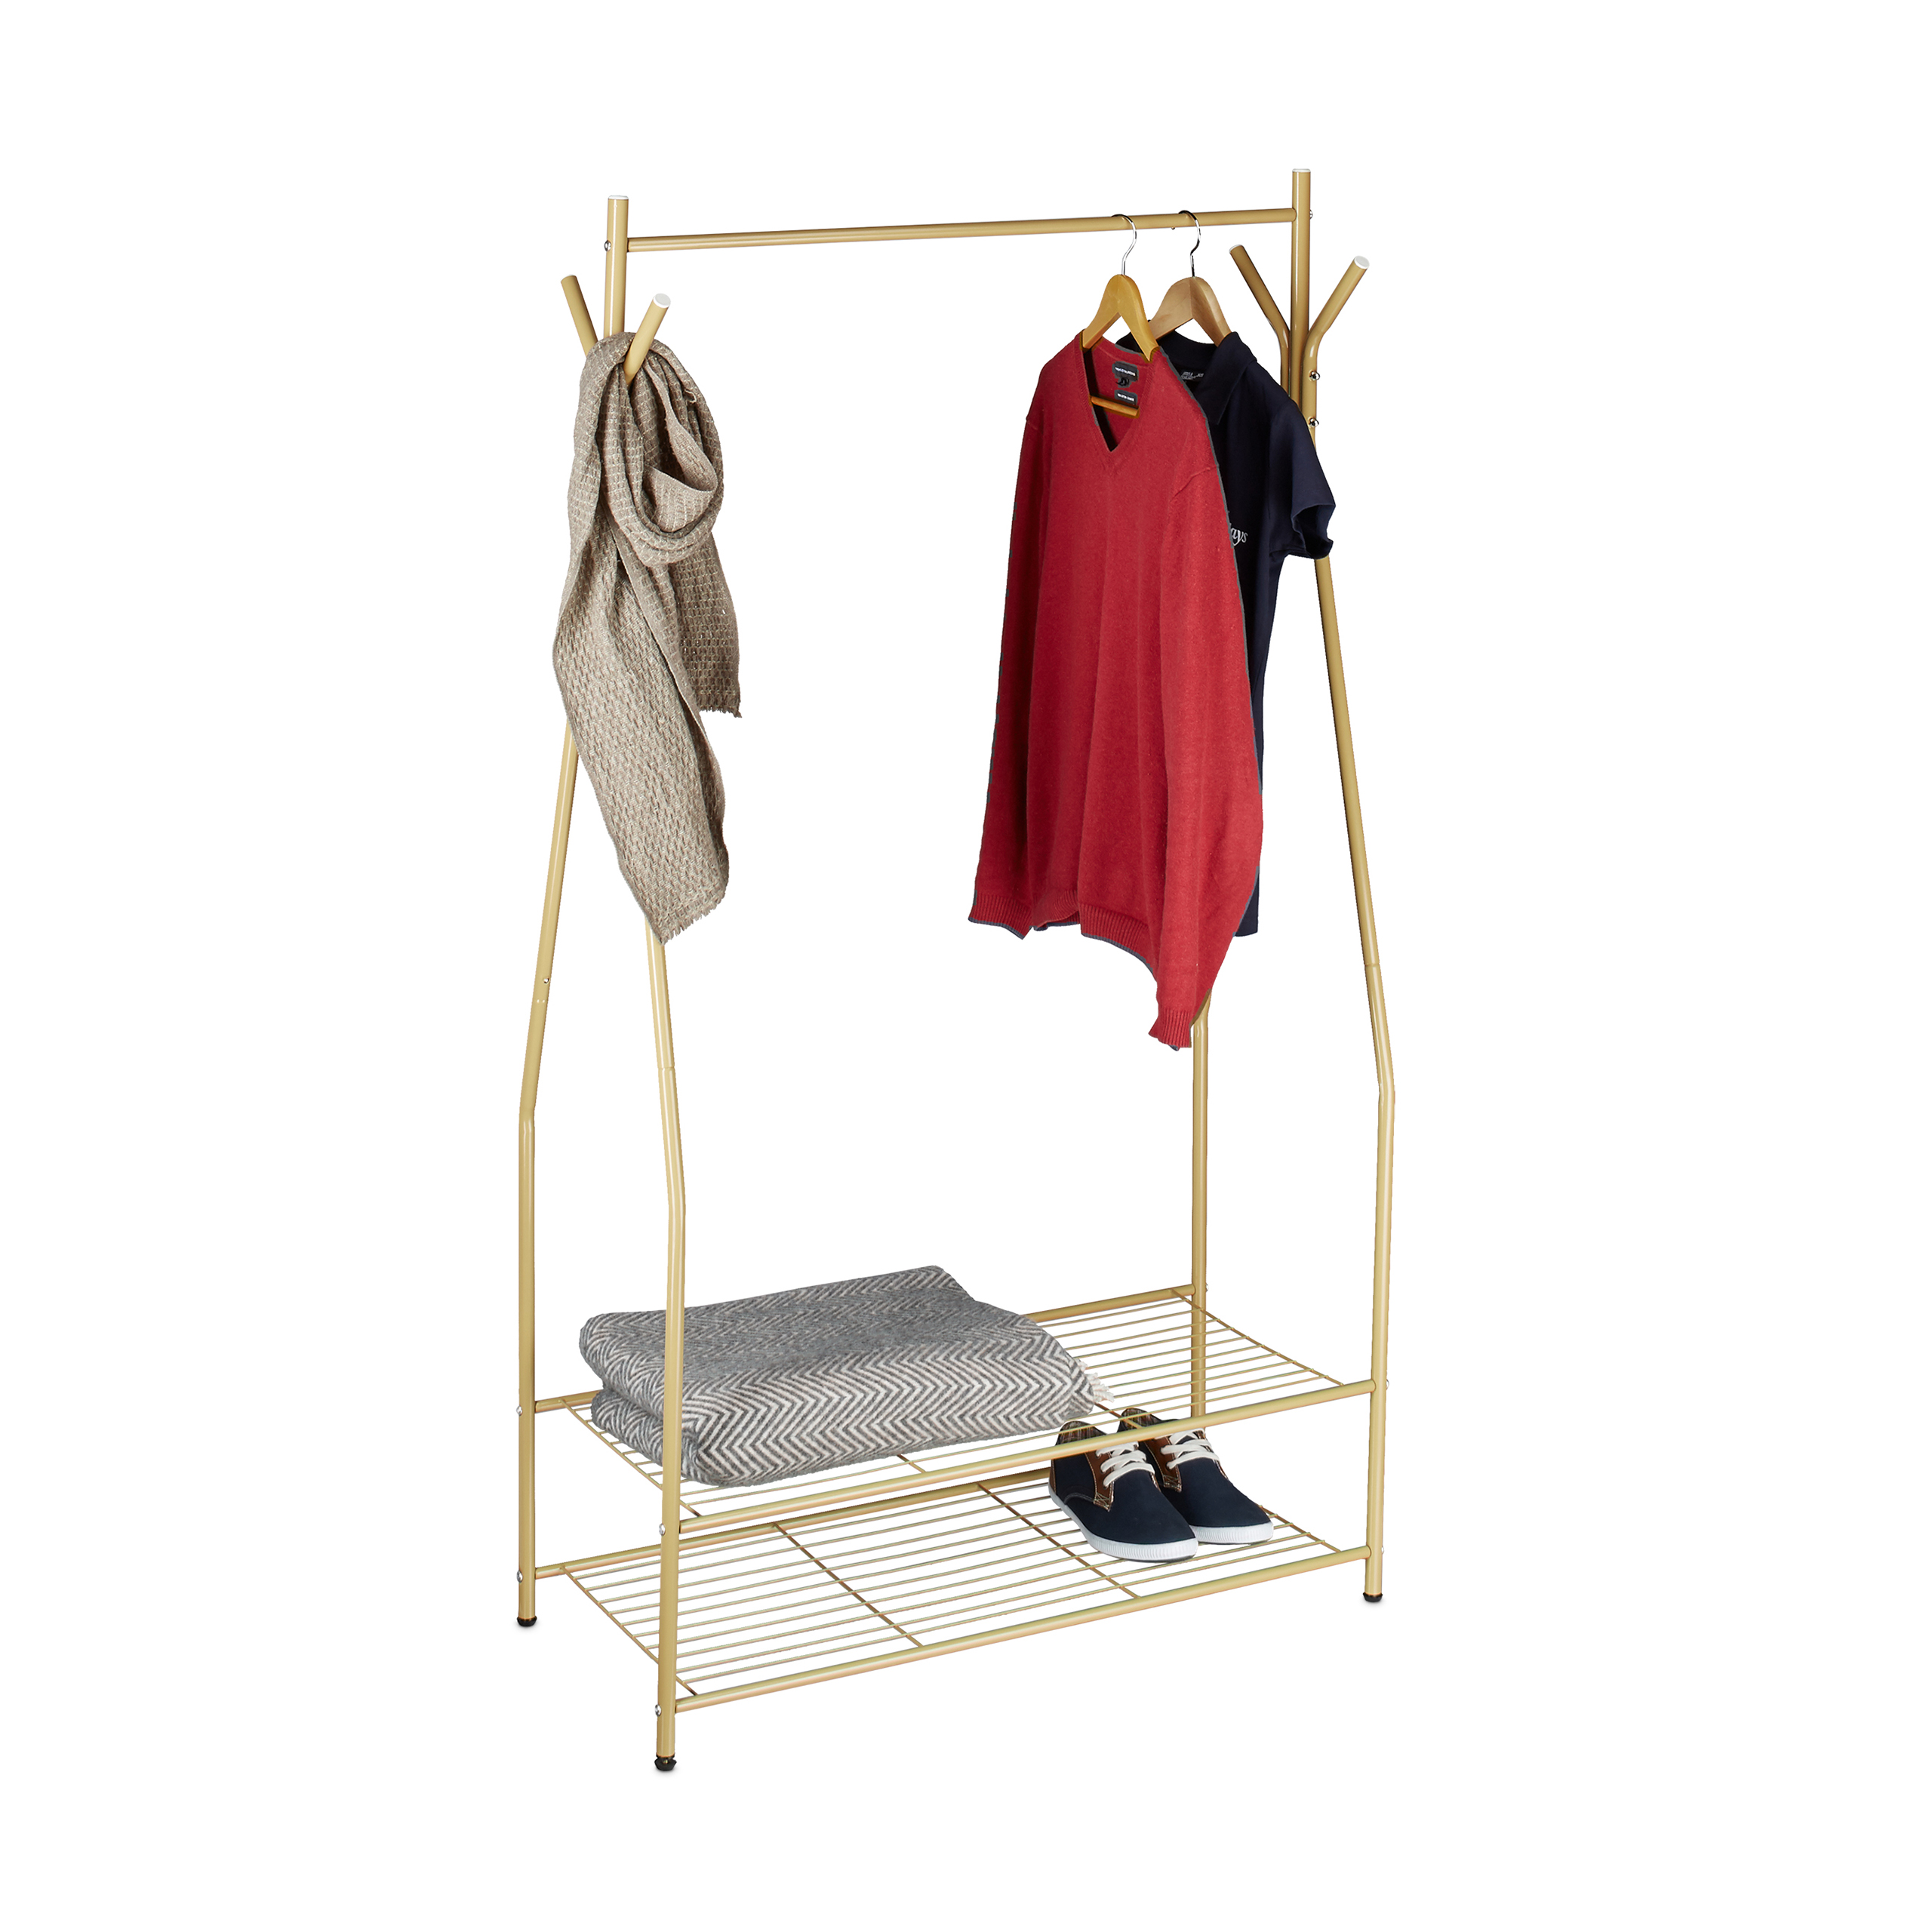 Clothes-Stand-Shoe-Rack-Wardrobe-Clothing-Storage-2-Shelves-Garment-Rack-Rail